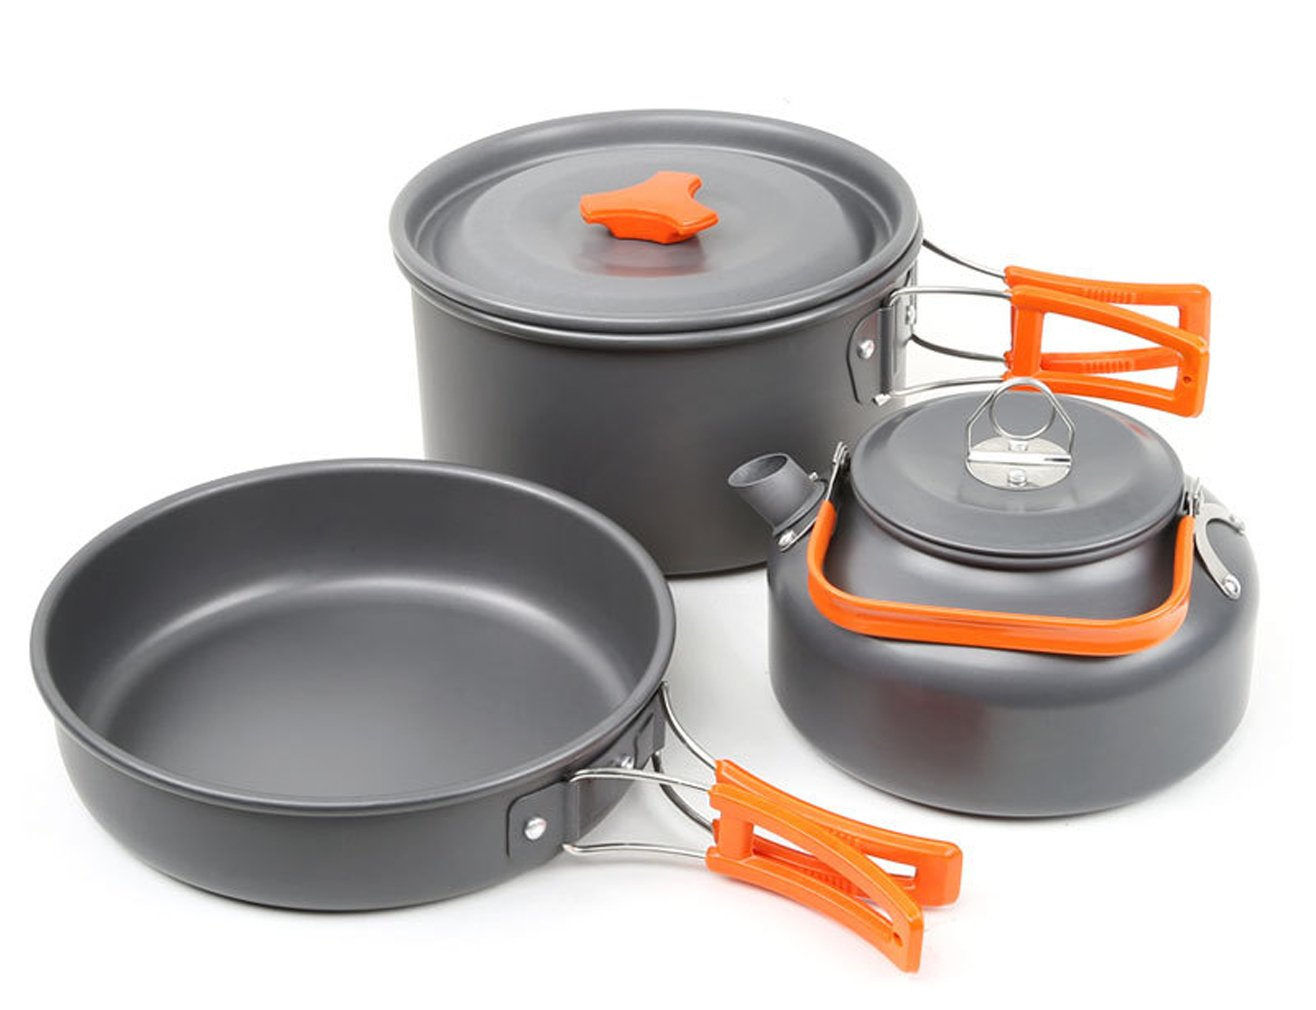 Campcookingsupplies Collection Here 1 To 2 People Camping Cookware Kit Portable Kitchen Pan Pot Set Suitable For Hiking Camping Fine Quality